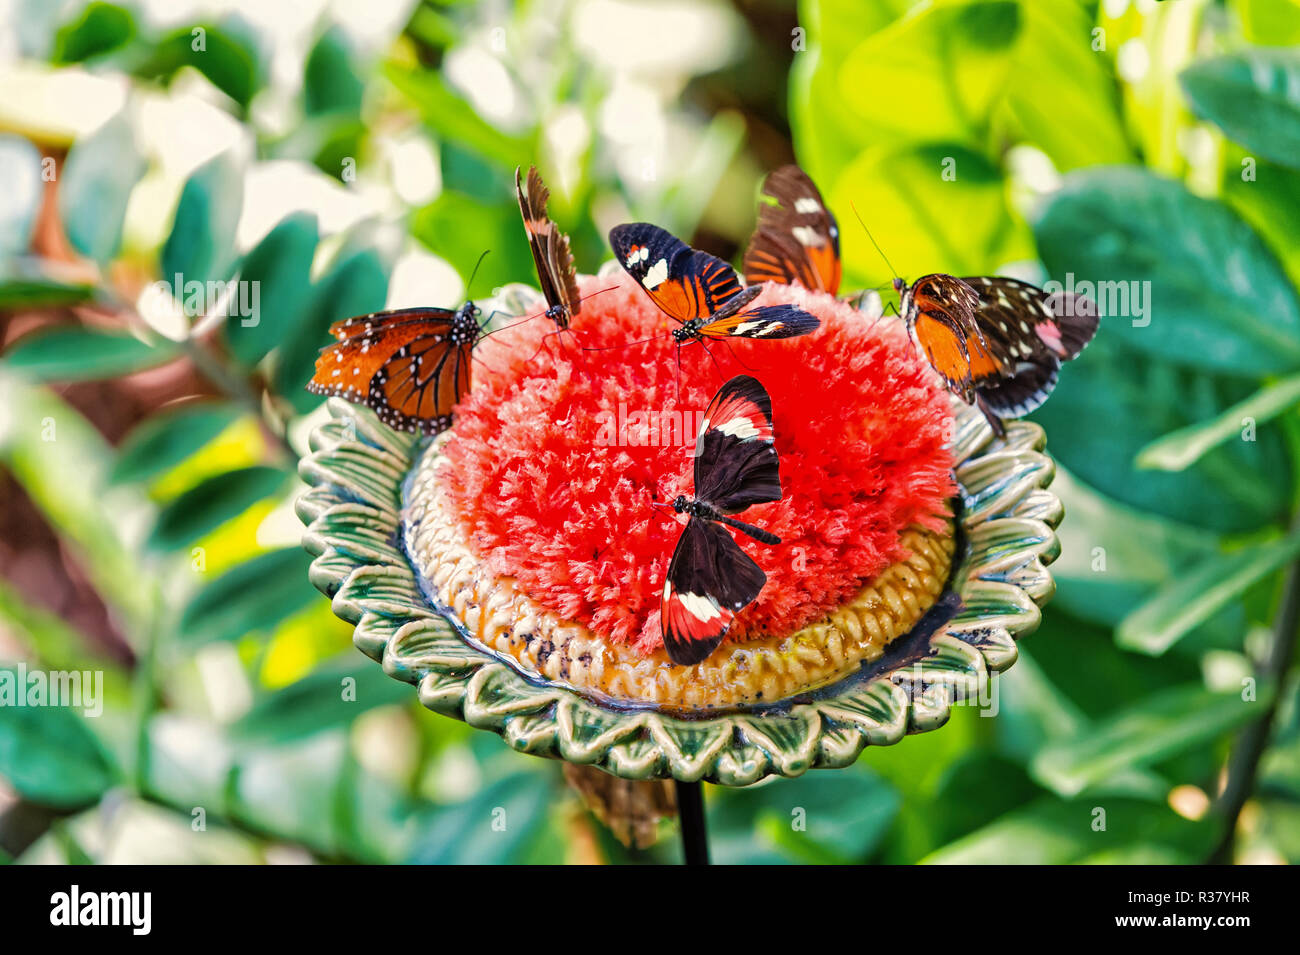 Butterflies or cute insects with brightly colored wings feeding nectar from large blossoming flower with green leaves on sunny summer day on natural background. Beauty of nature. Wildlife - Stock Image